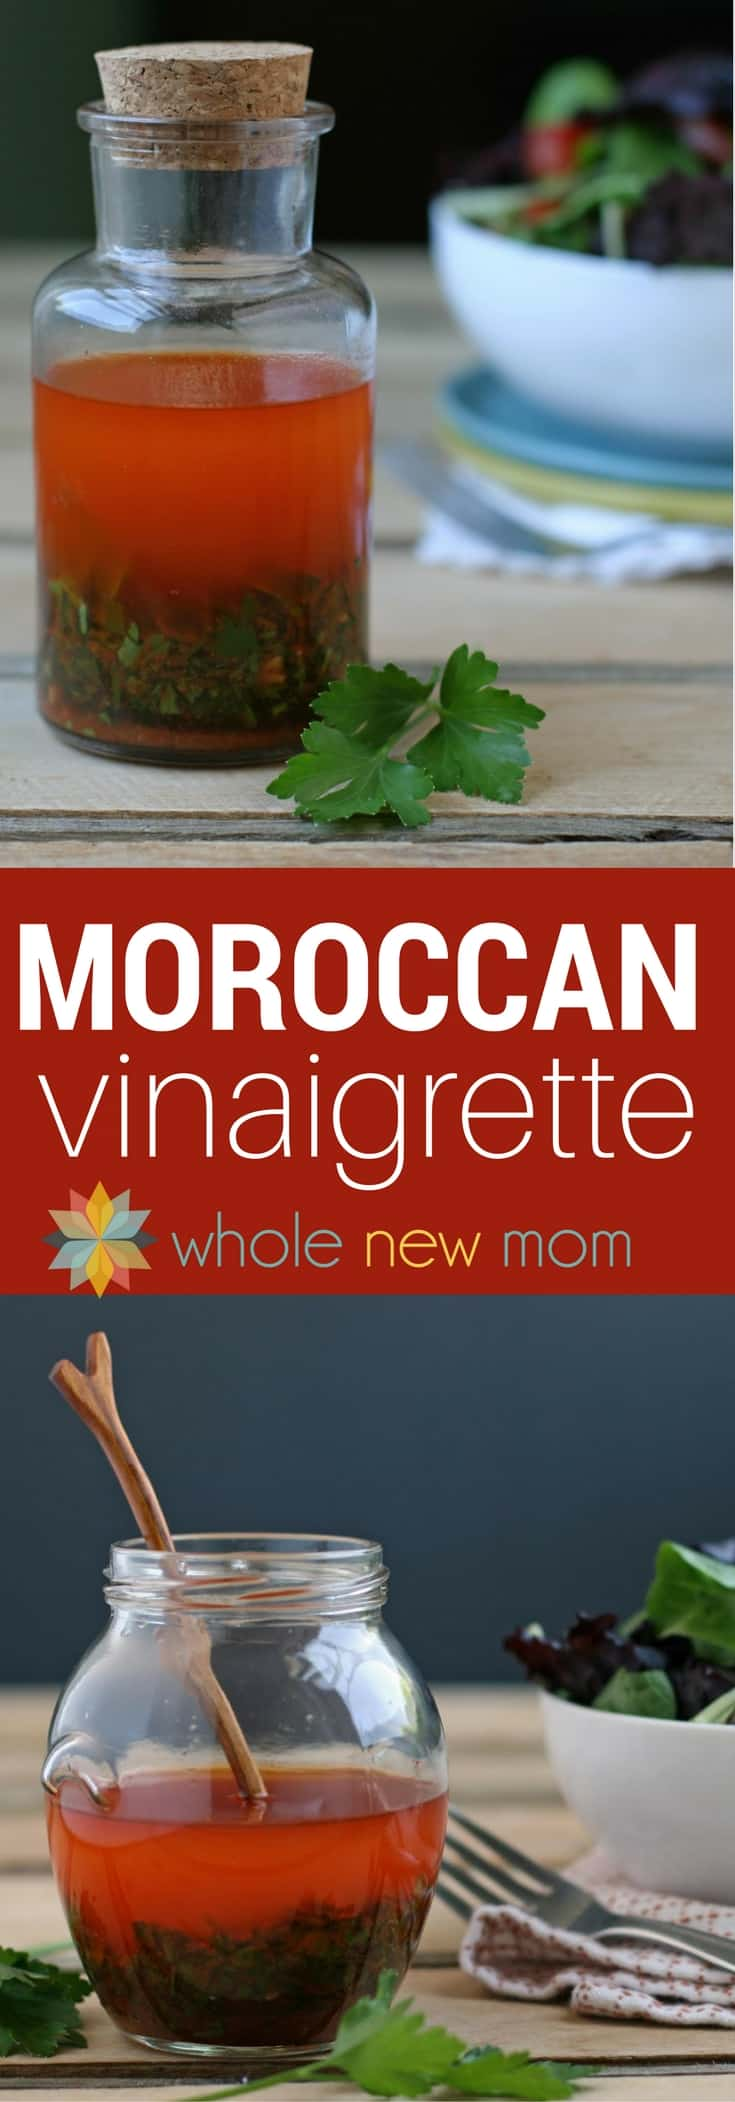 This Moroccan Vinaigrette is on our table for every meal--it's that good! And it's not just for salads. It's great on sides & main dishes too! #paleo #vegan #healthy #easy #lowcarb #keto